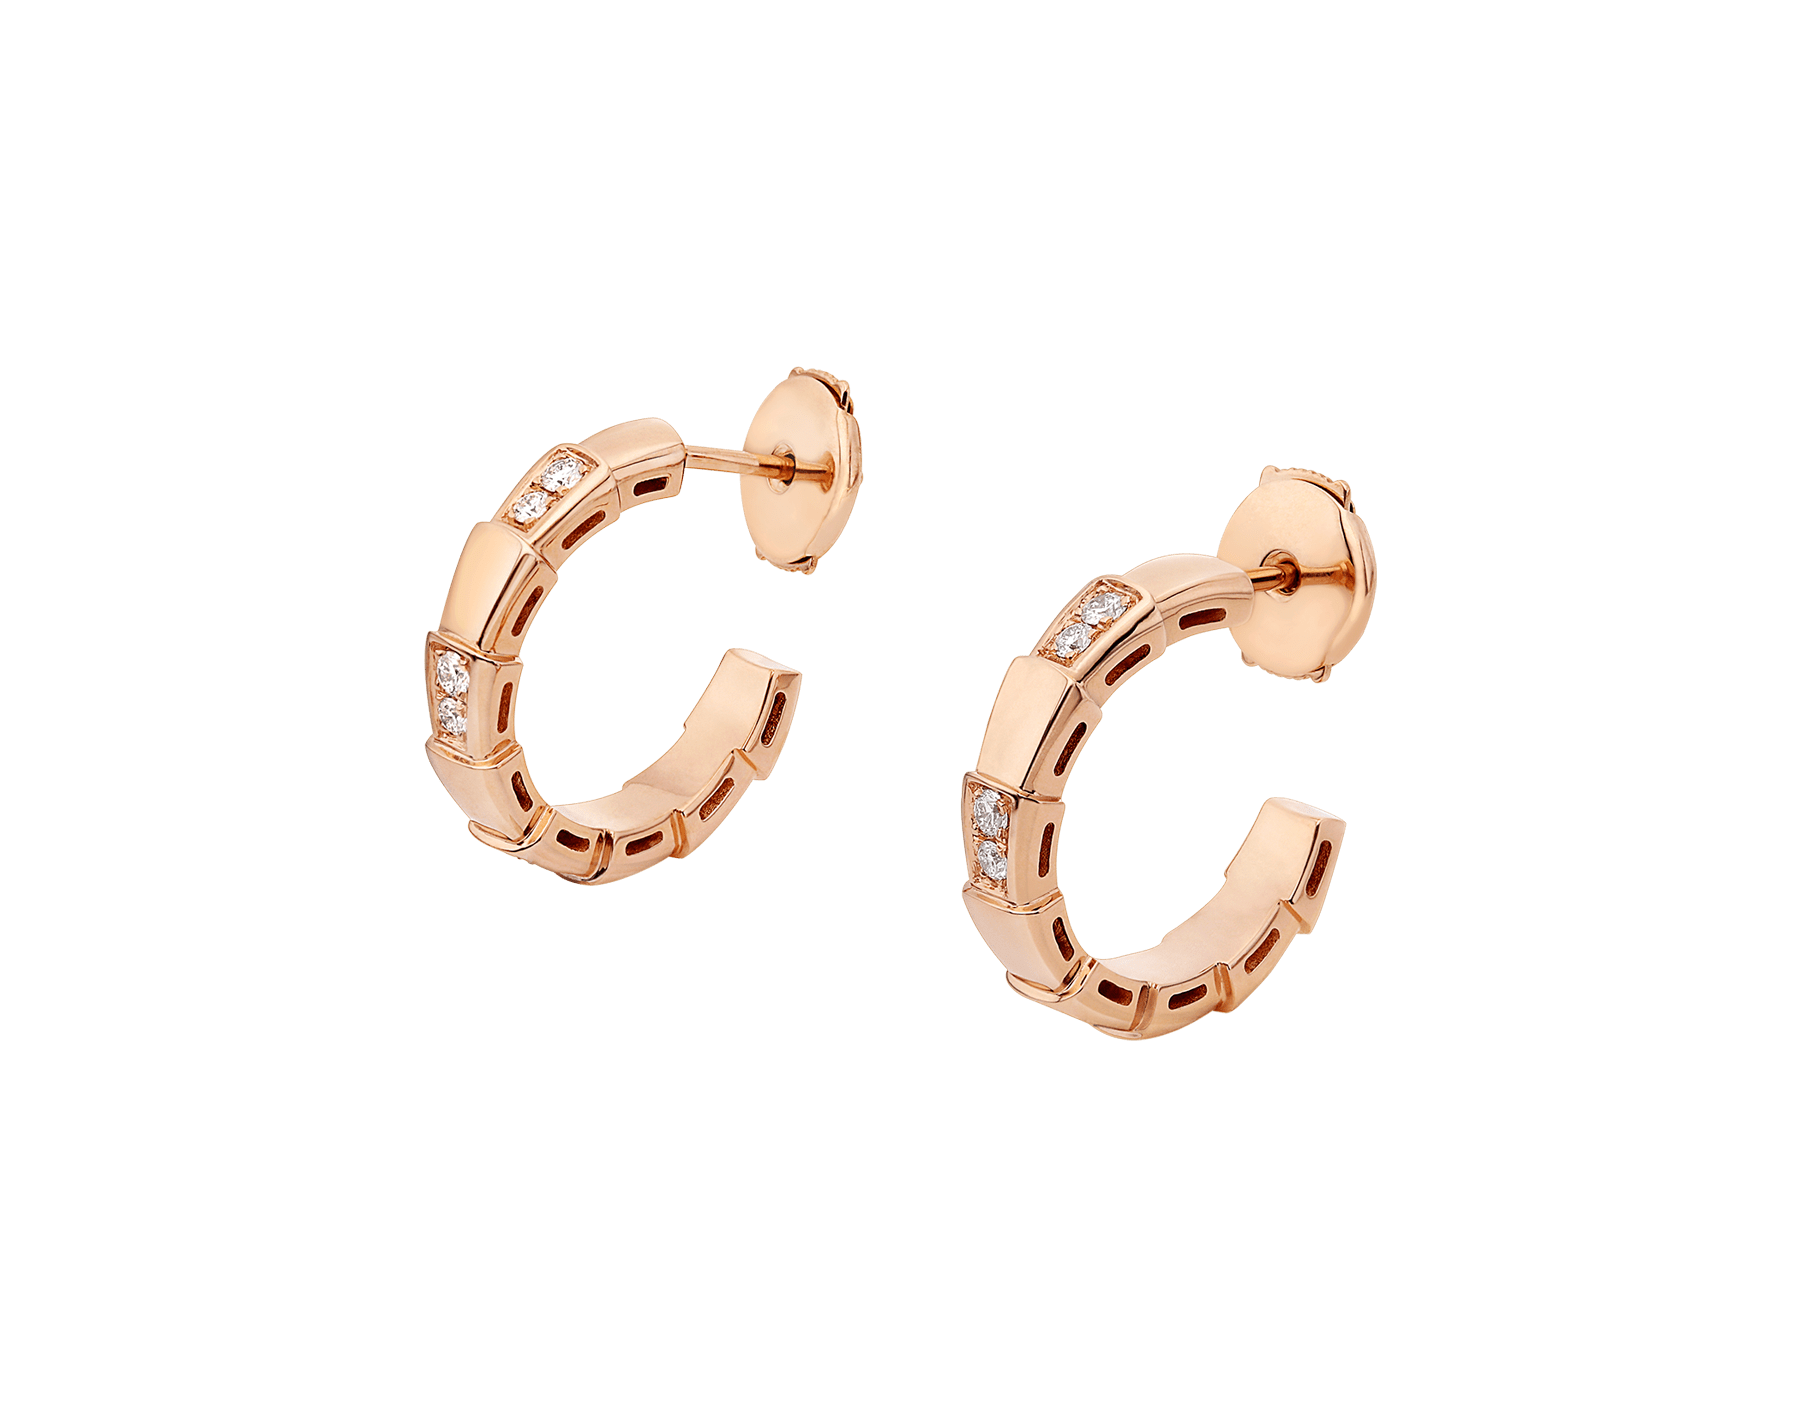 Serpenti Viper 18 kt rose gold earrings set with pavé diamonds (0.28 ct) 356175 image 2